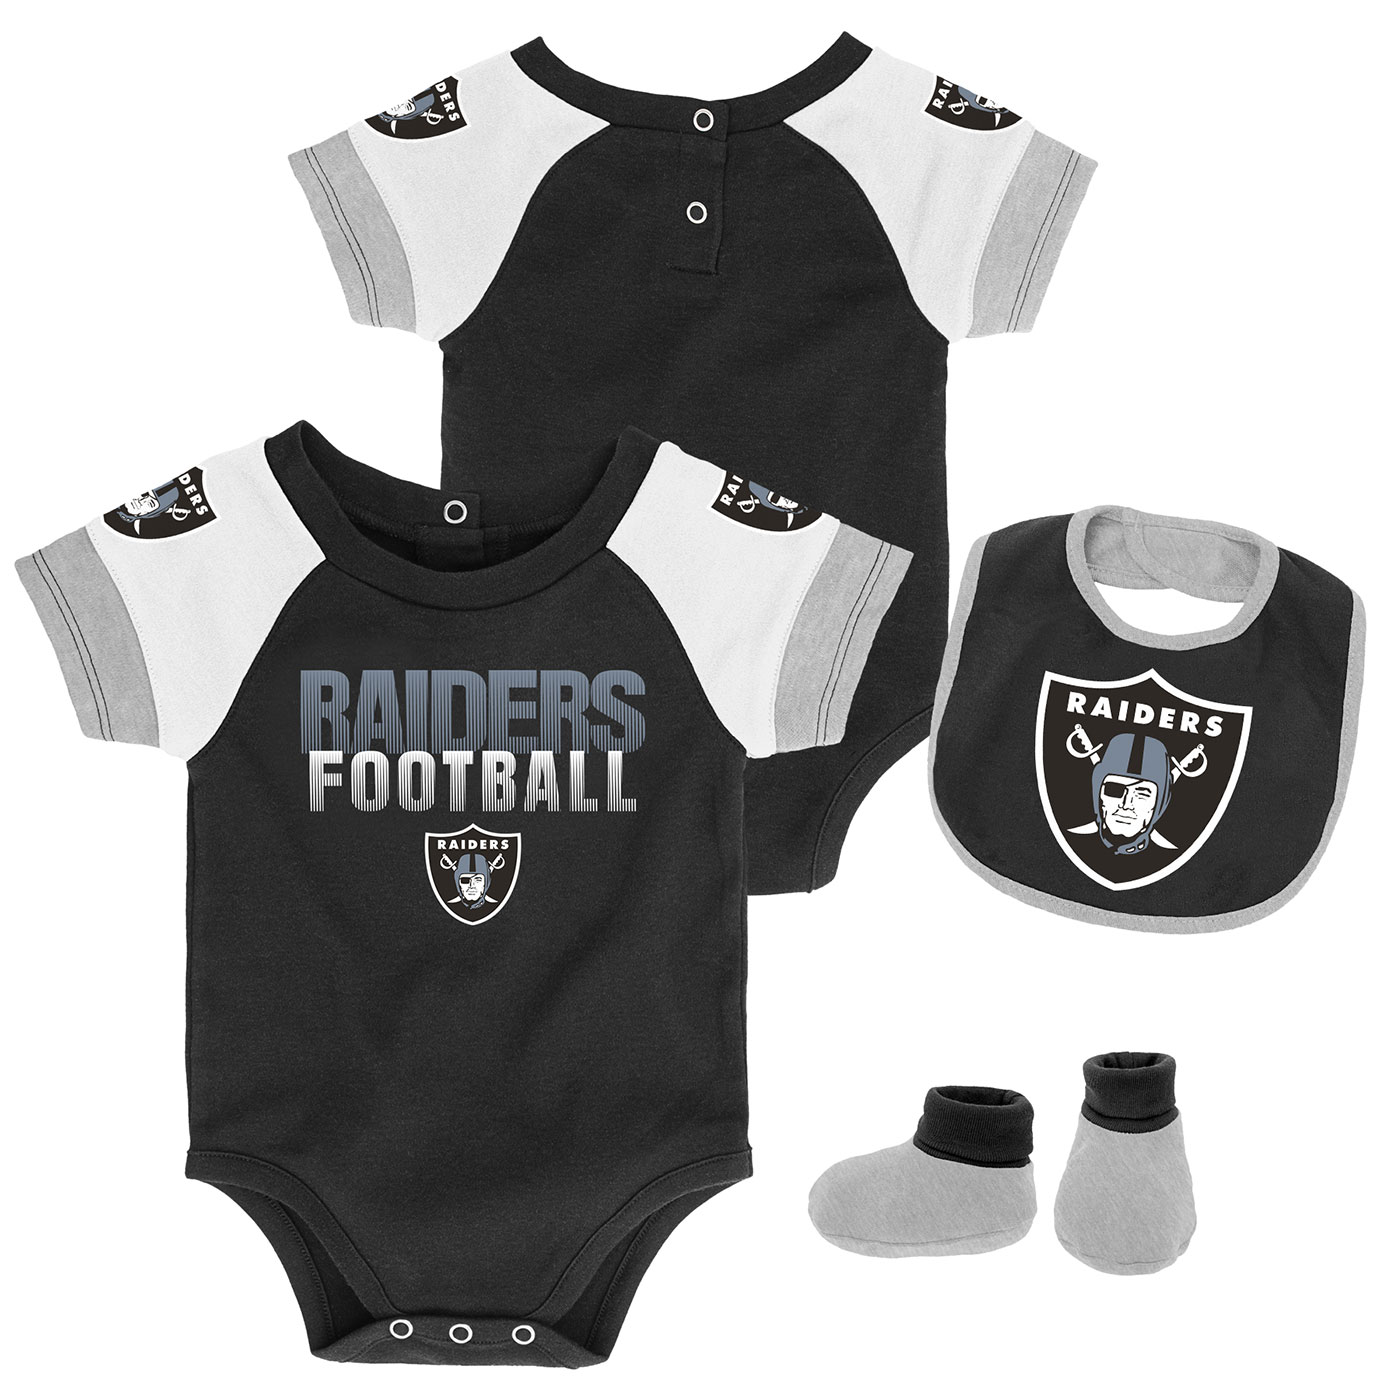 Raiders Infant 50 Yard Dash 3 Piece Set c6a47b3c2